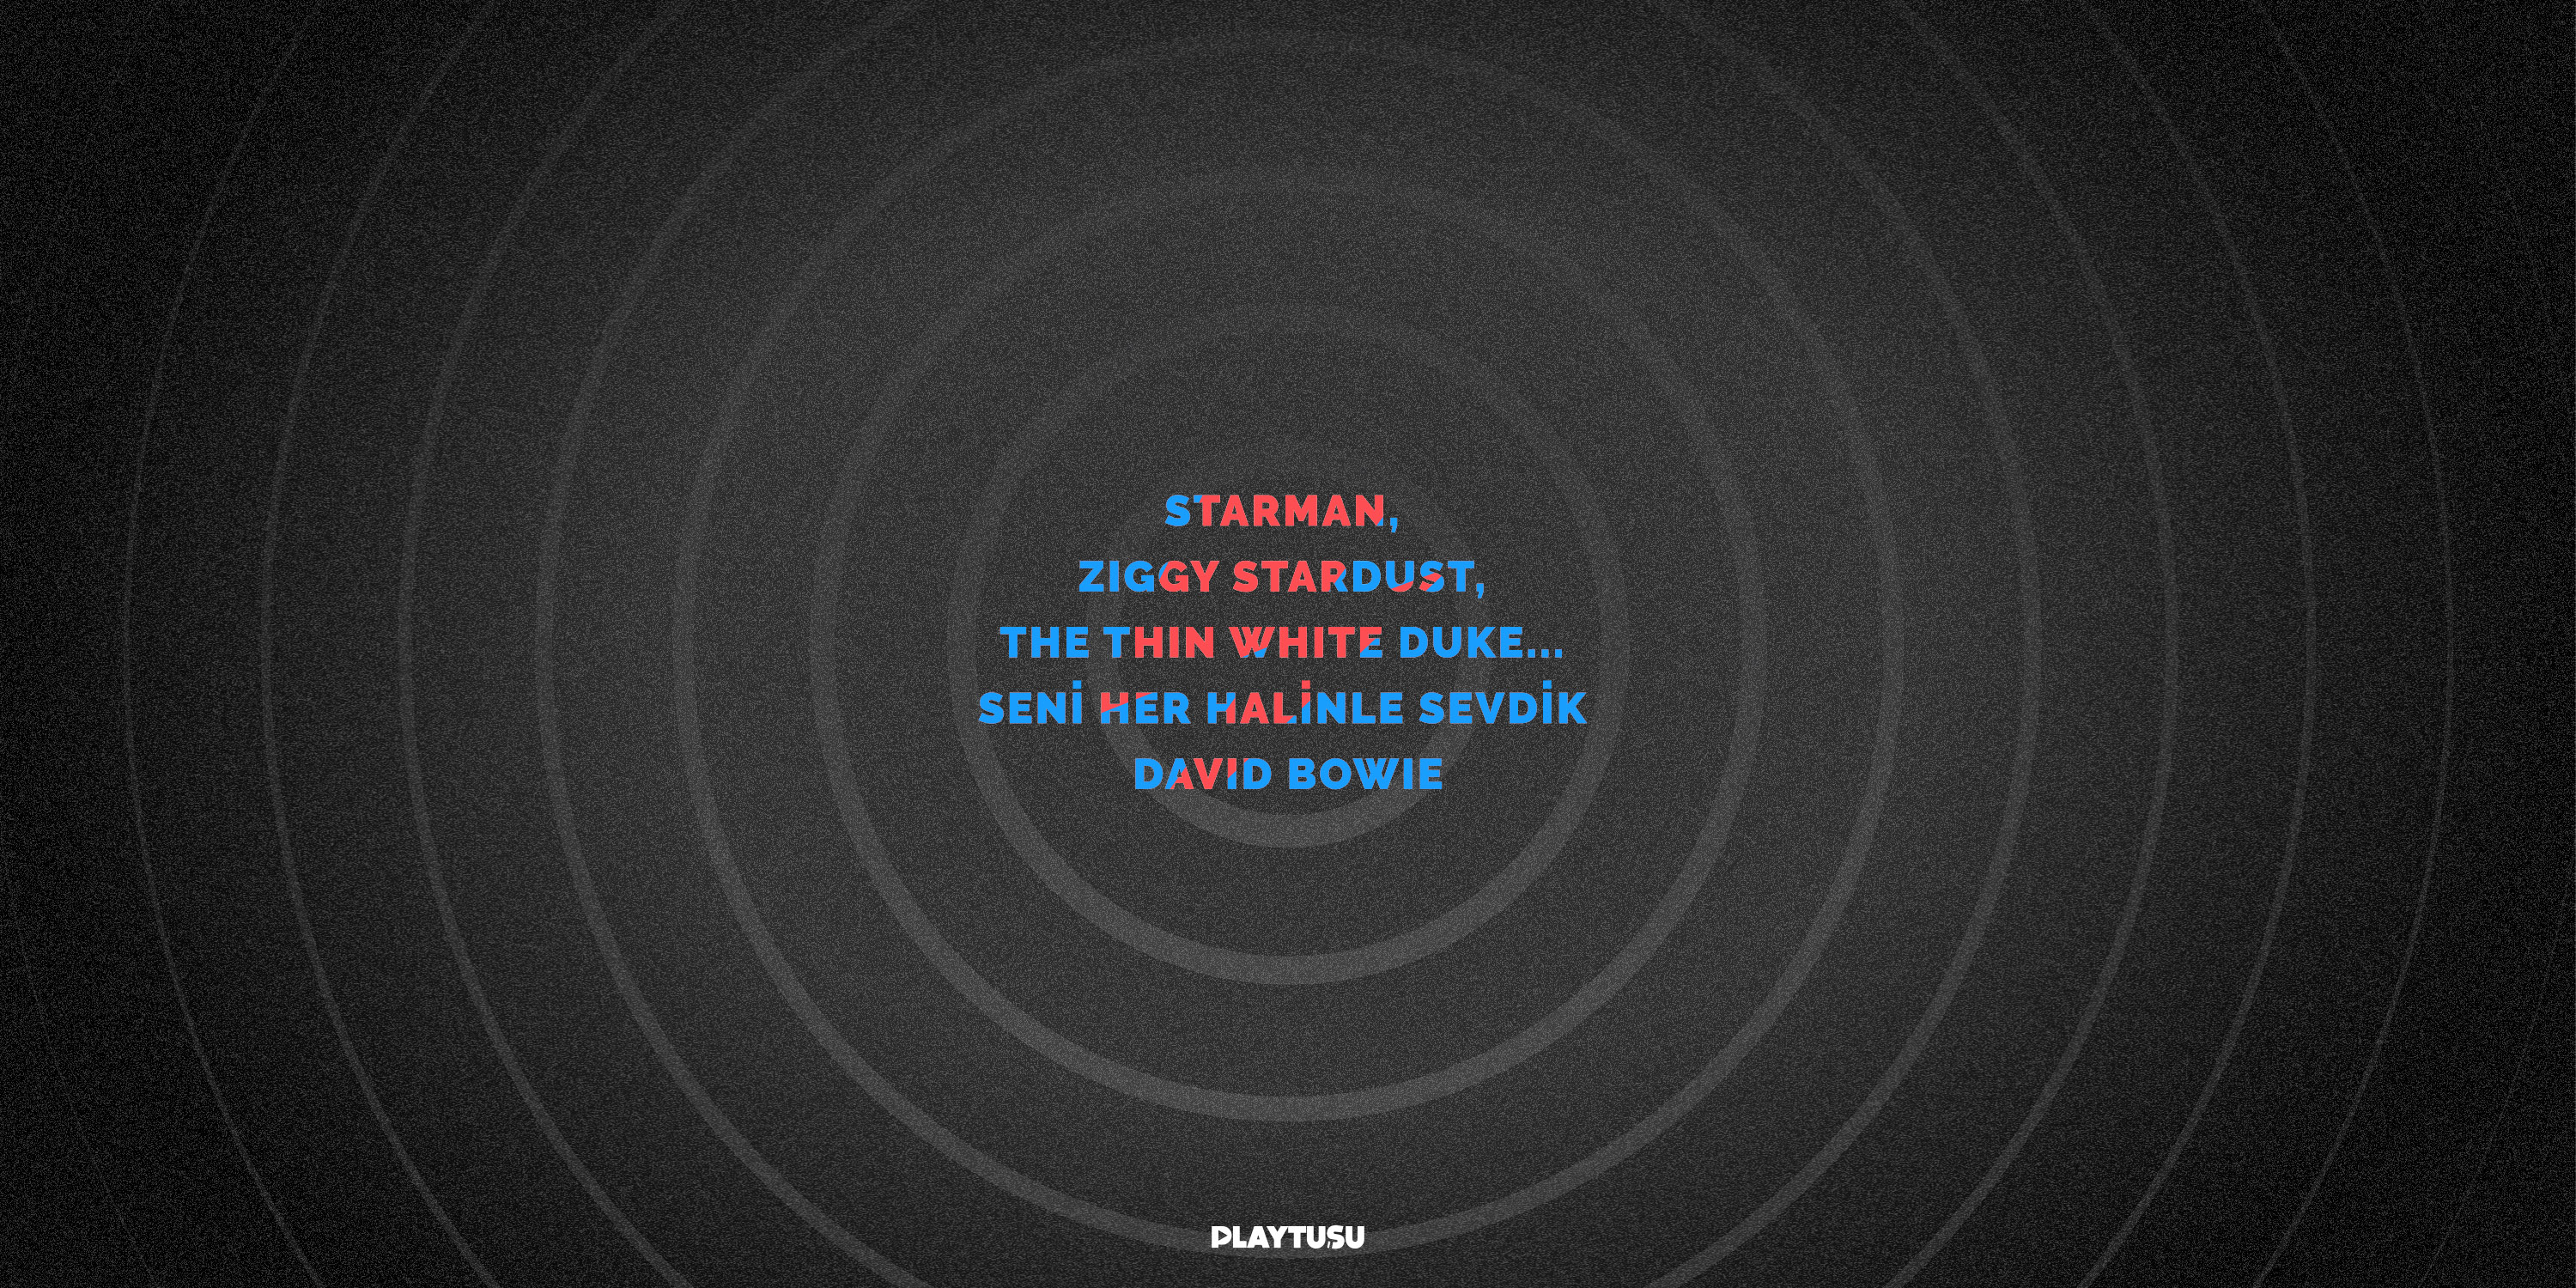 STARMAN, ZIGGY STARDUST, THE THIN WHITE DUKE… SENİ HER HALİNLE SEVDİK DAVID BOWIE